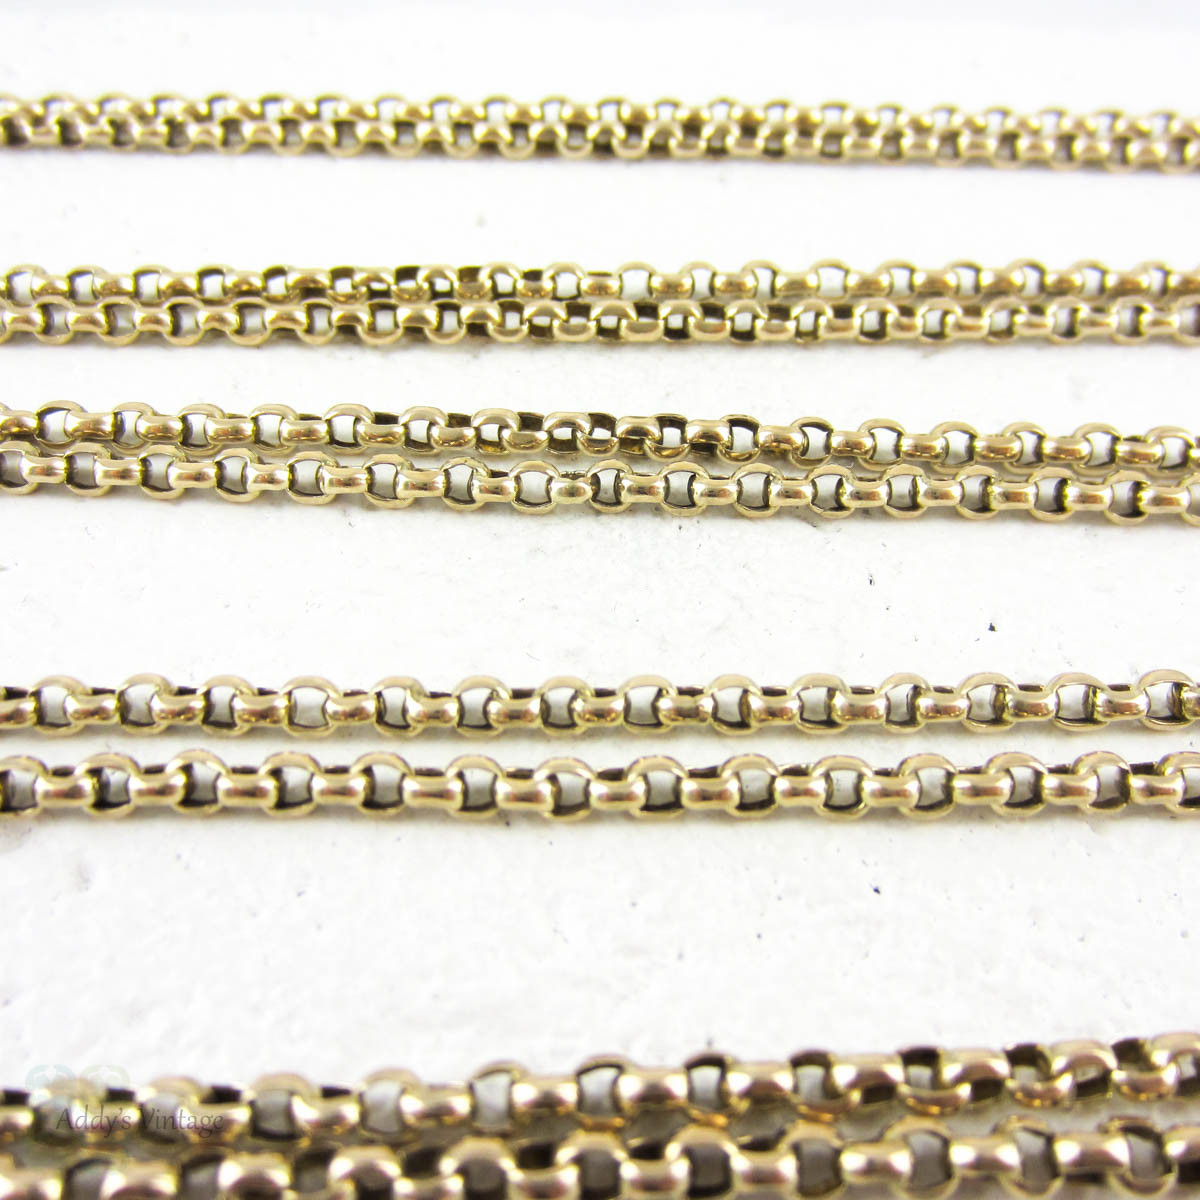 antique 9 carat long guard chain belcher link yellow gold chain necklace 173 cm 68 inches. Black Bedroom Furniture Sets. Home Design Ideas